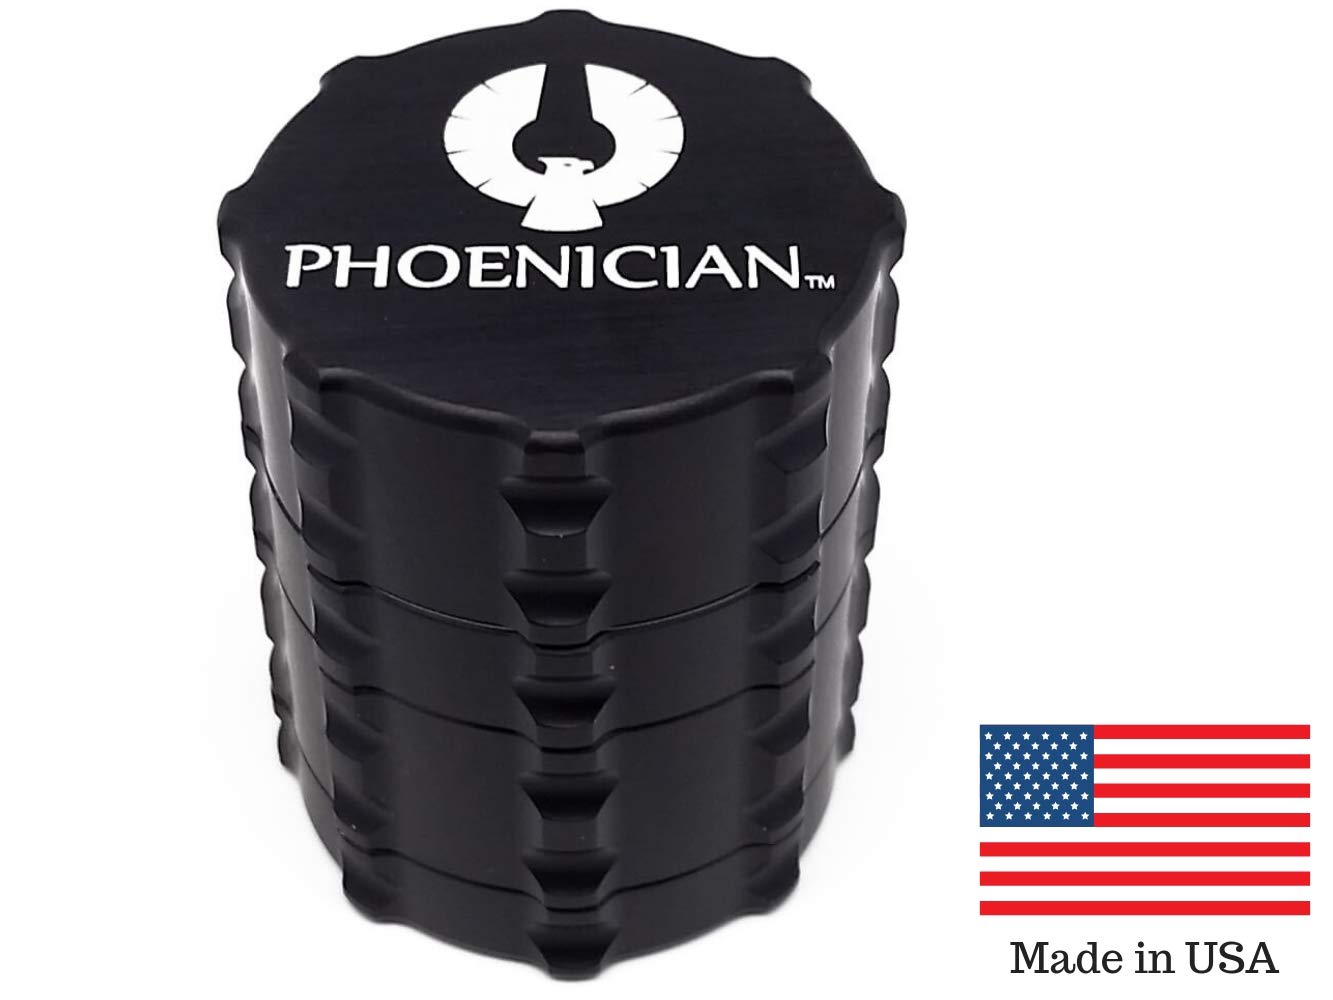 Phoenician Herb Tobacco Spice Grinder - 4 Piece Anodized Aluminum Set - Official Medical Grade Phoenician Grinders - Made in USA - Small (Jet Black) by Phoenician